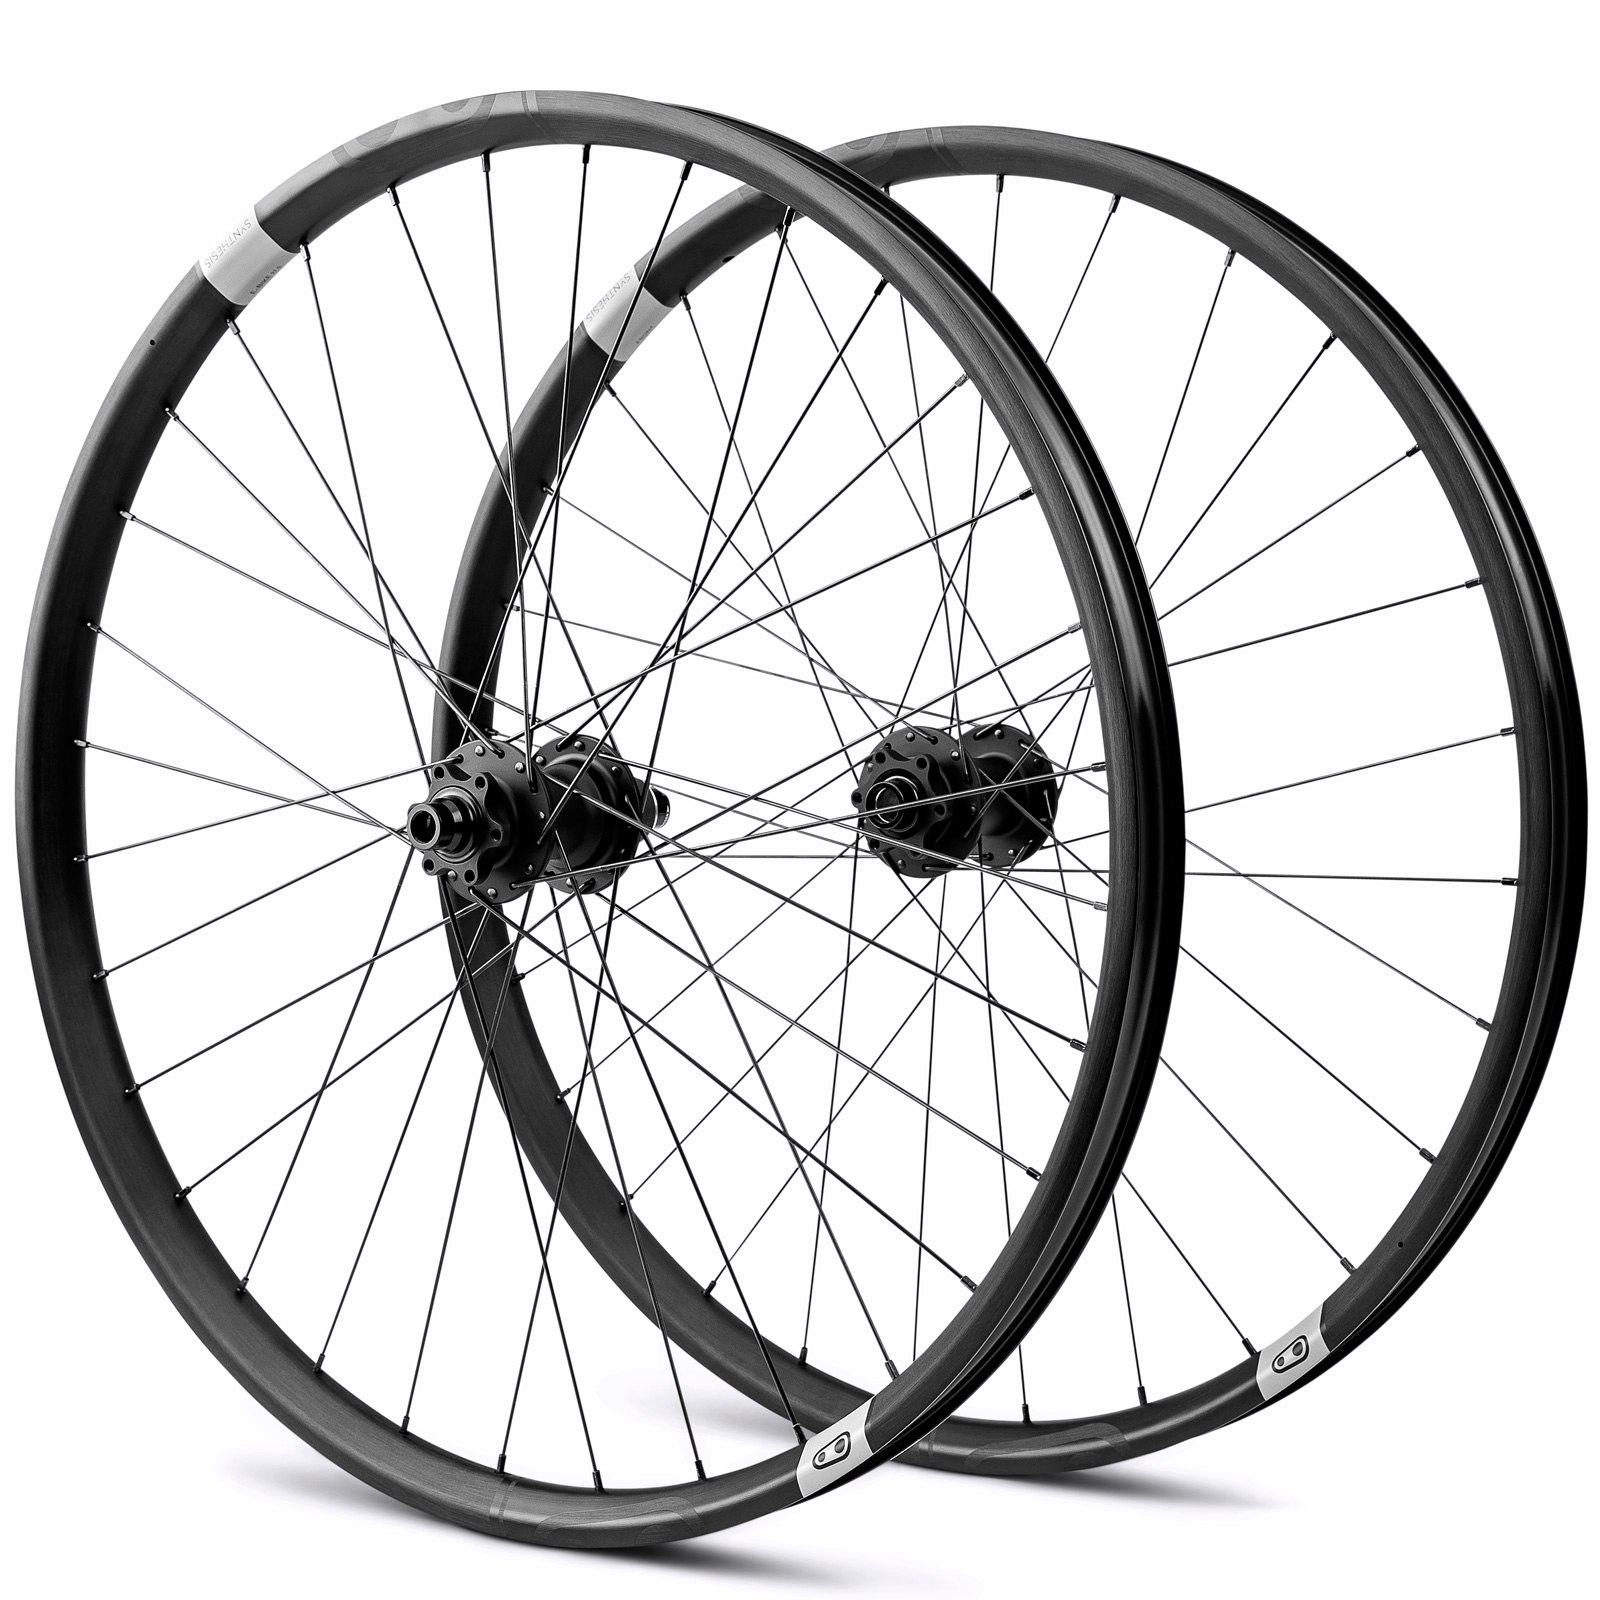 Crankbrothers Synthesis E-MTB Alloy - 27,5+ Inch Wheelset - 6-Bolt - Shimano/SRAM HG - FW: 15x110mm | RW: 12x148mm Boost